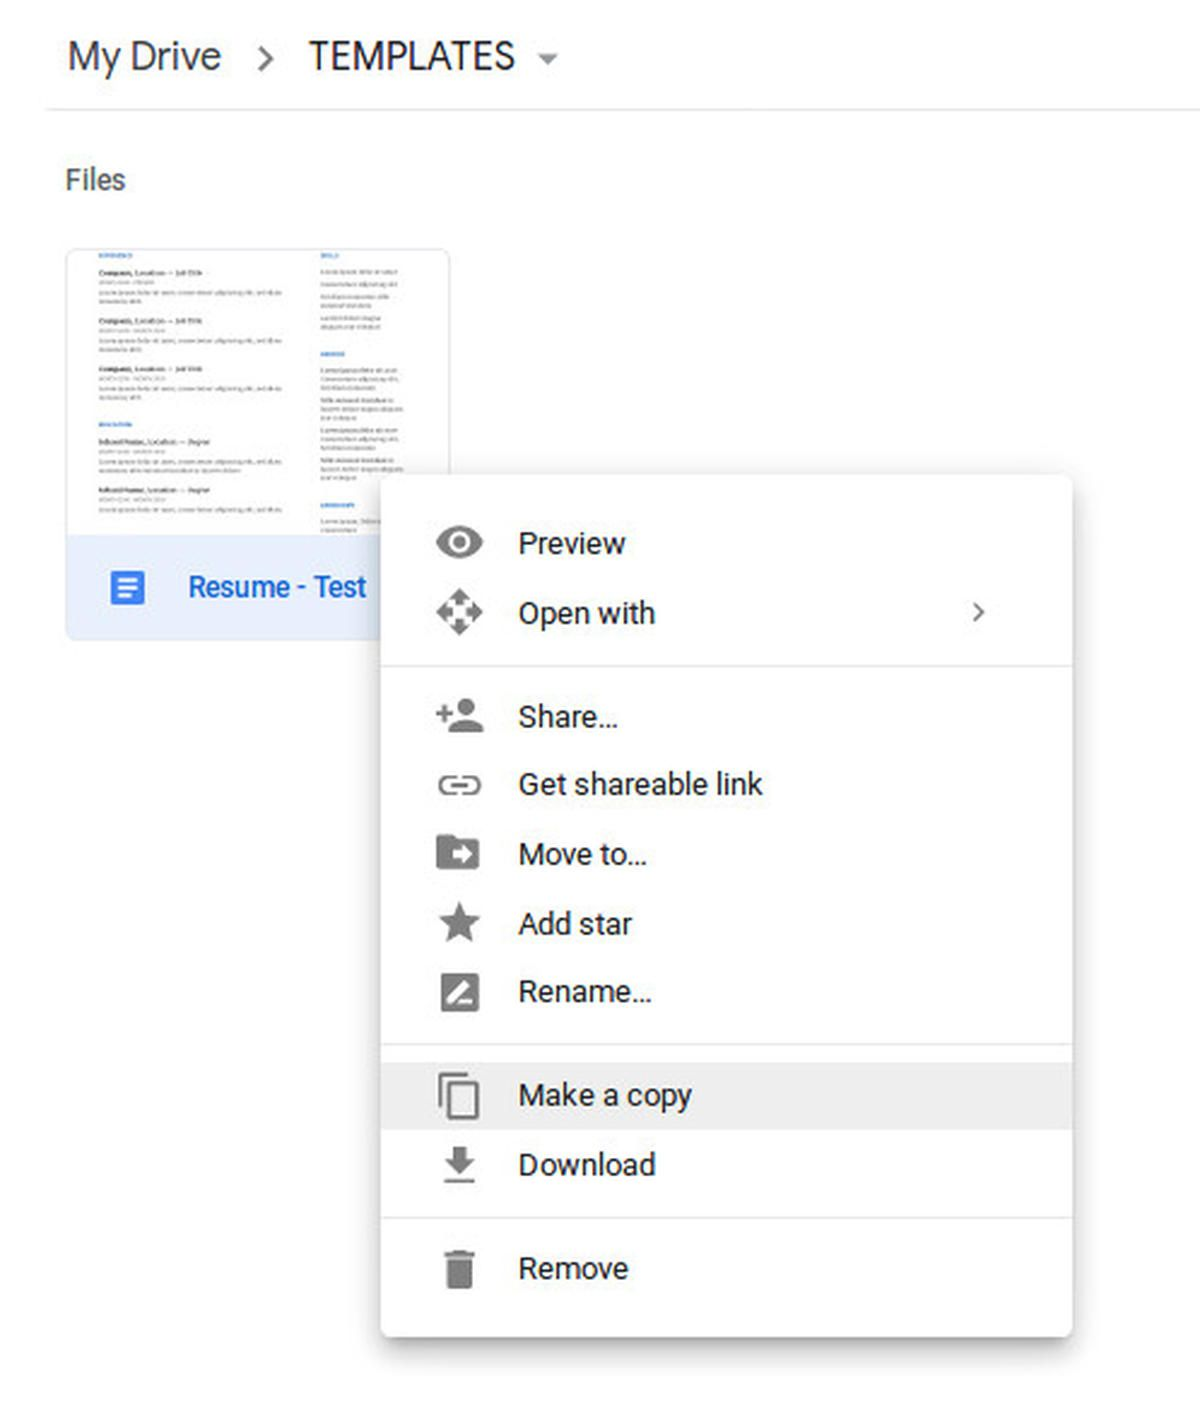 How to create new templates in the free version of google